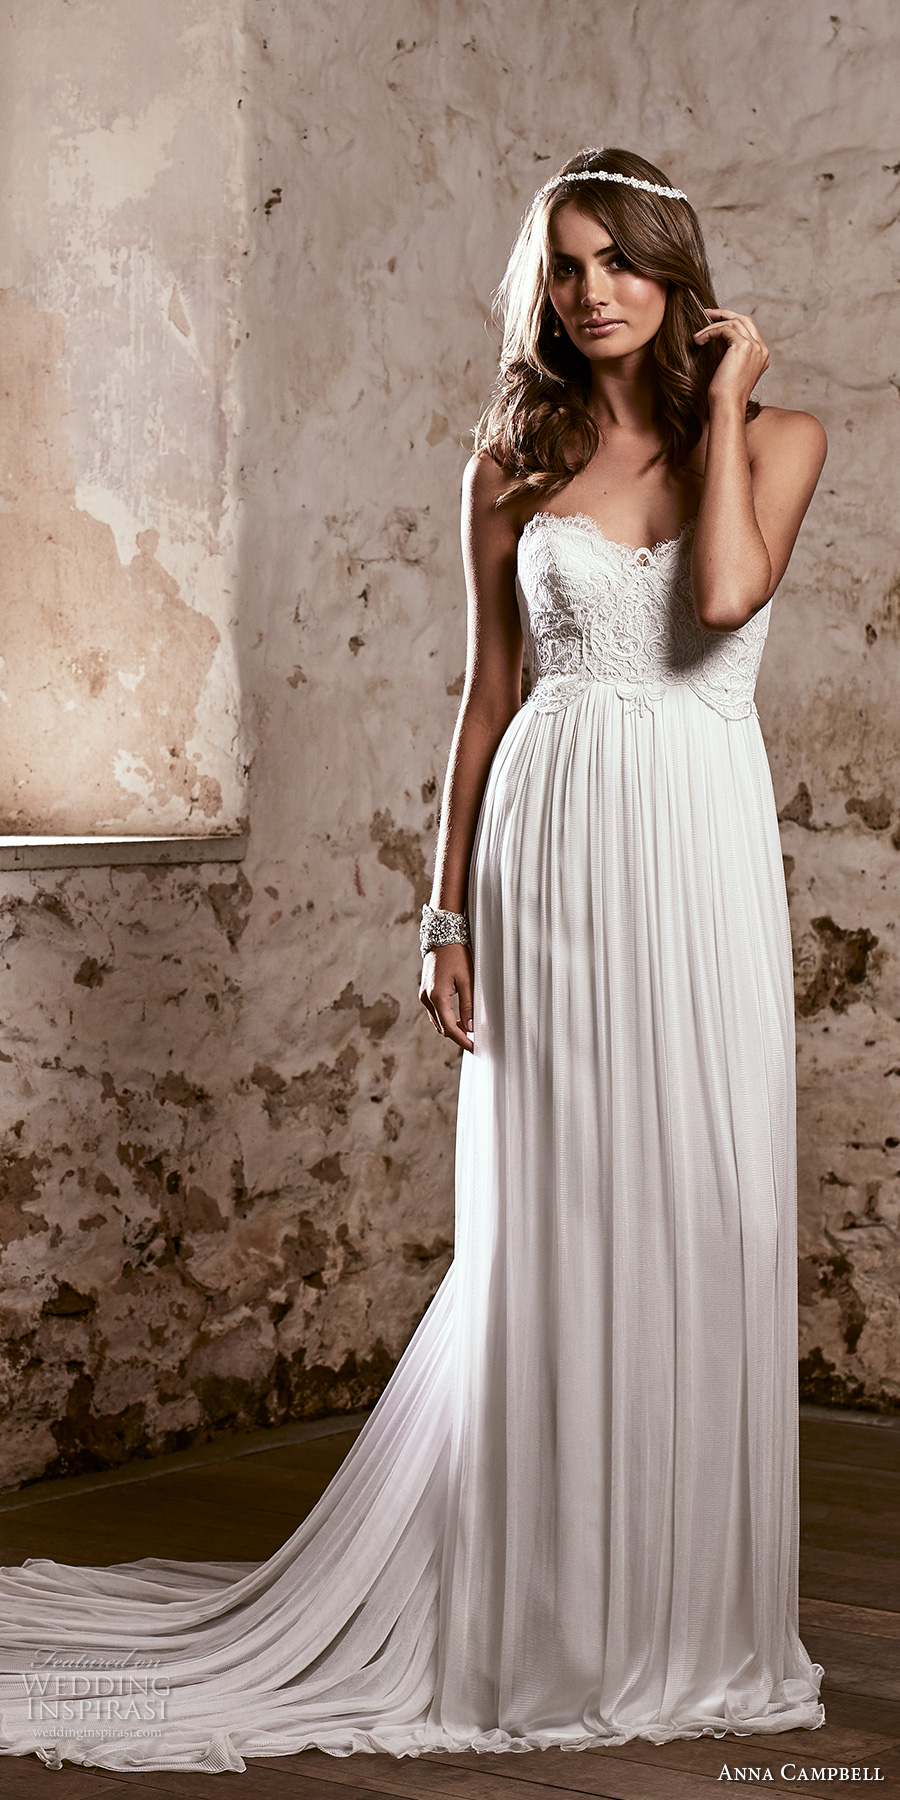 anna campbell 2018 bridal strapless sweetheart neckline heavily embellished bodice romantic soft a line wedding dress open back sweep train (16) mv